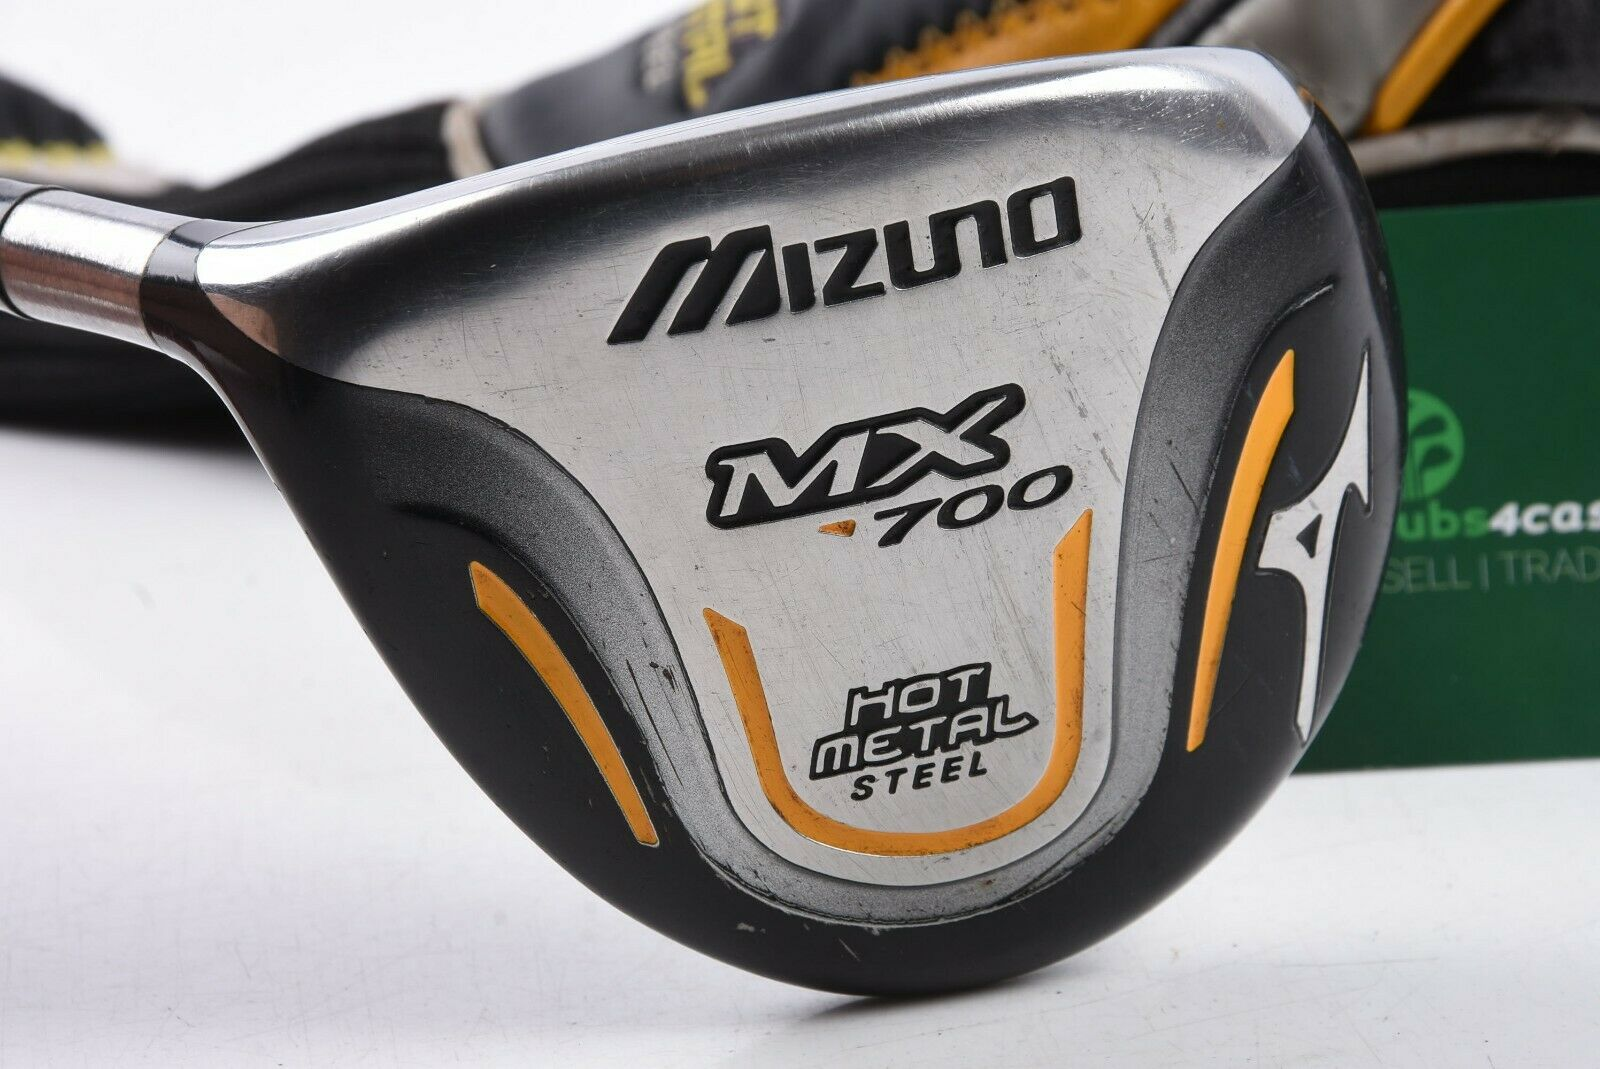 mizuno mx700 3 wood